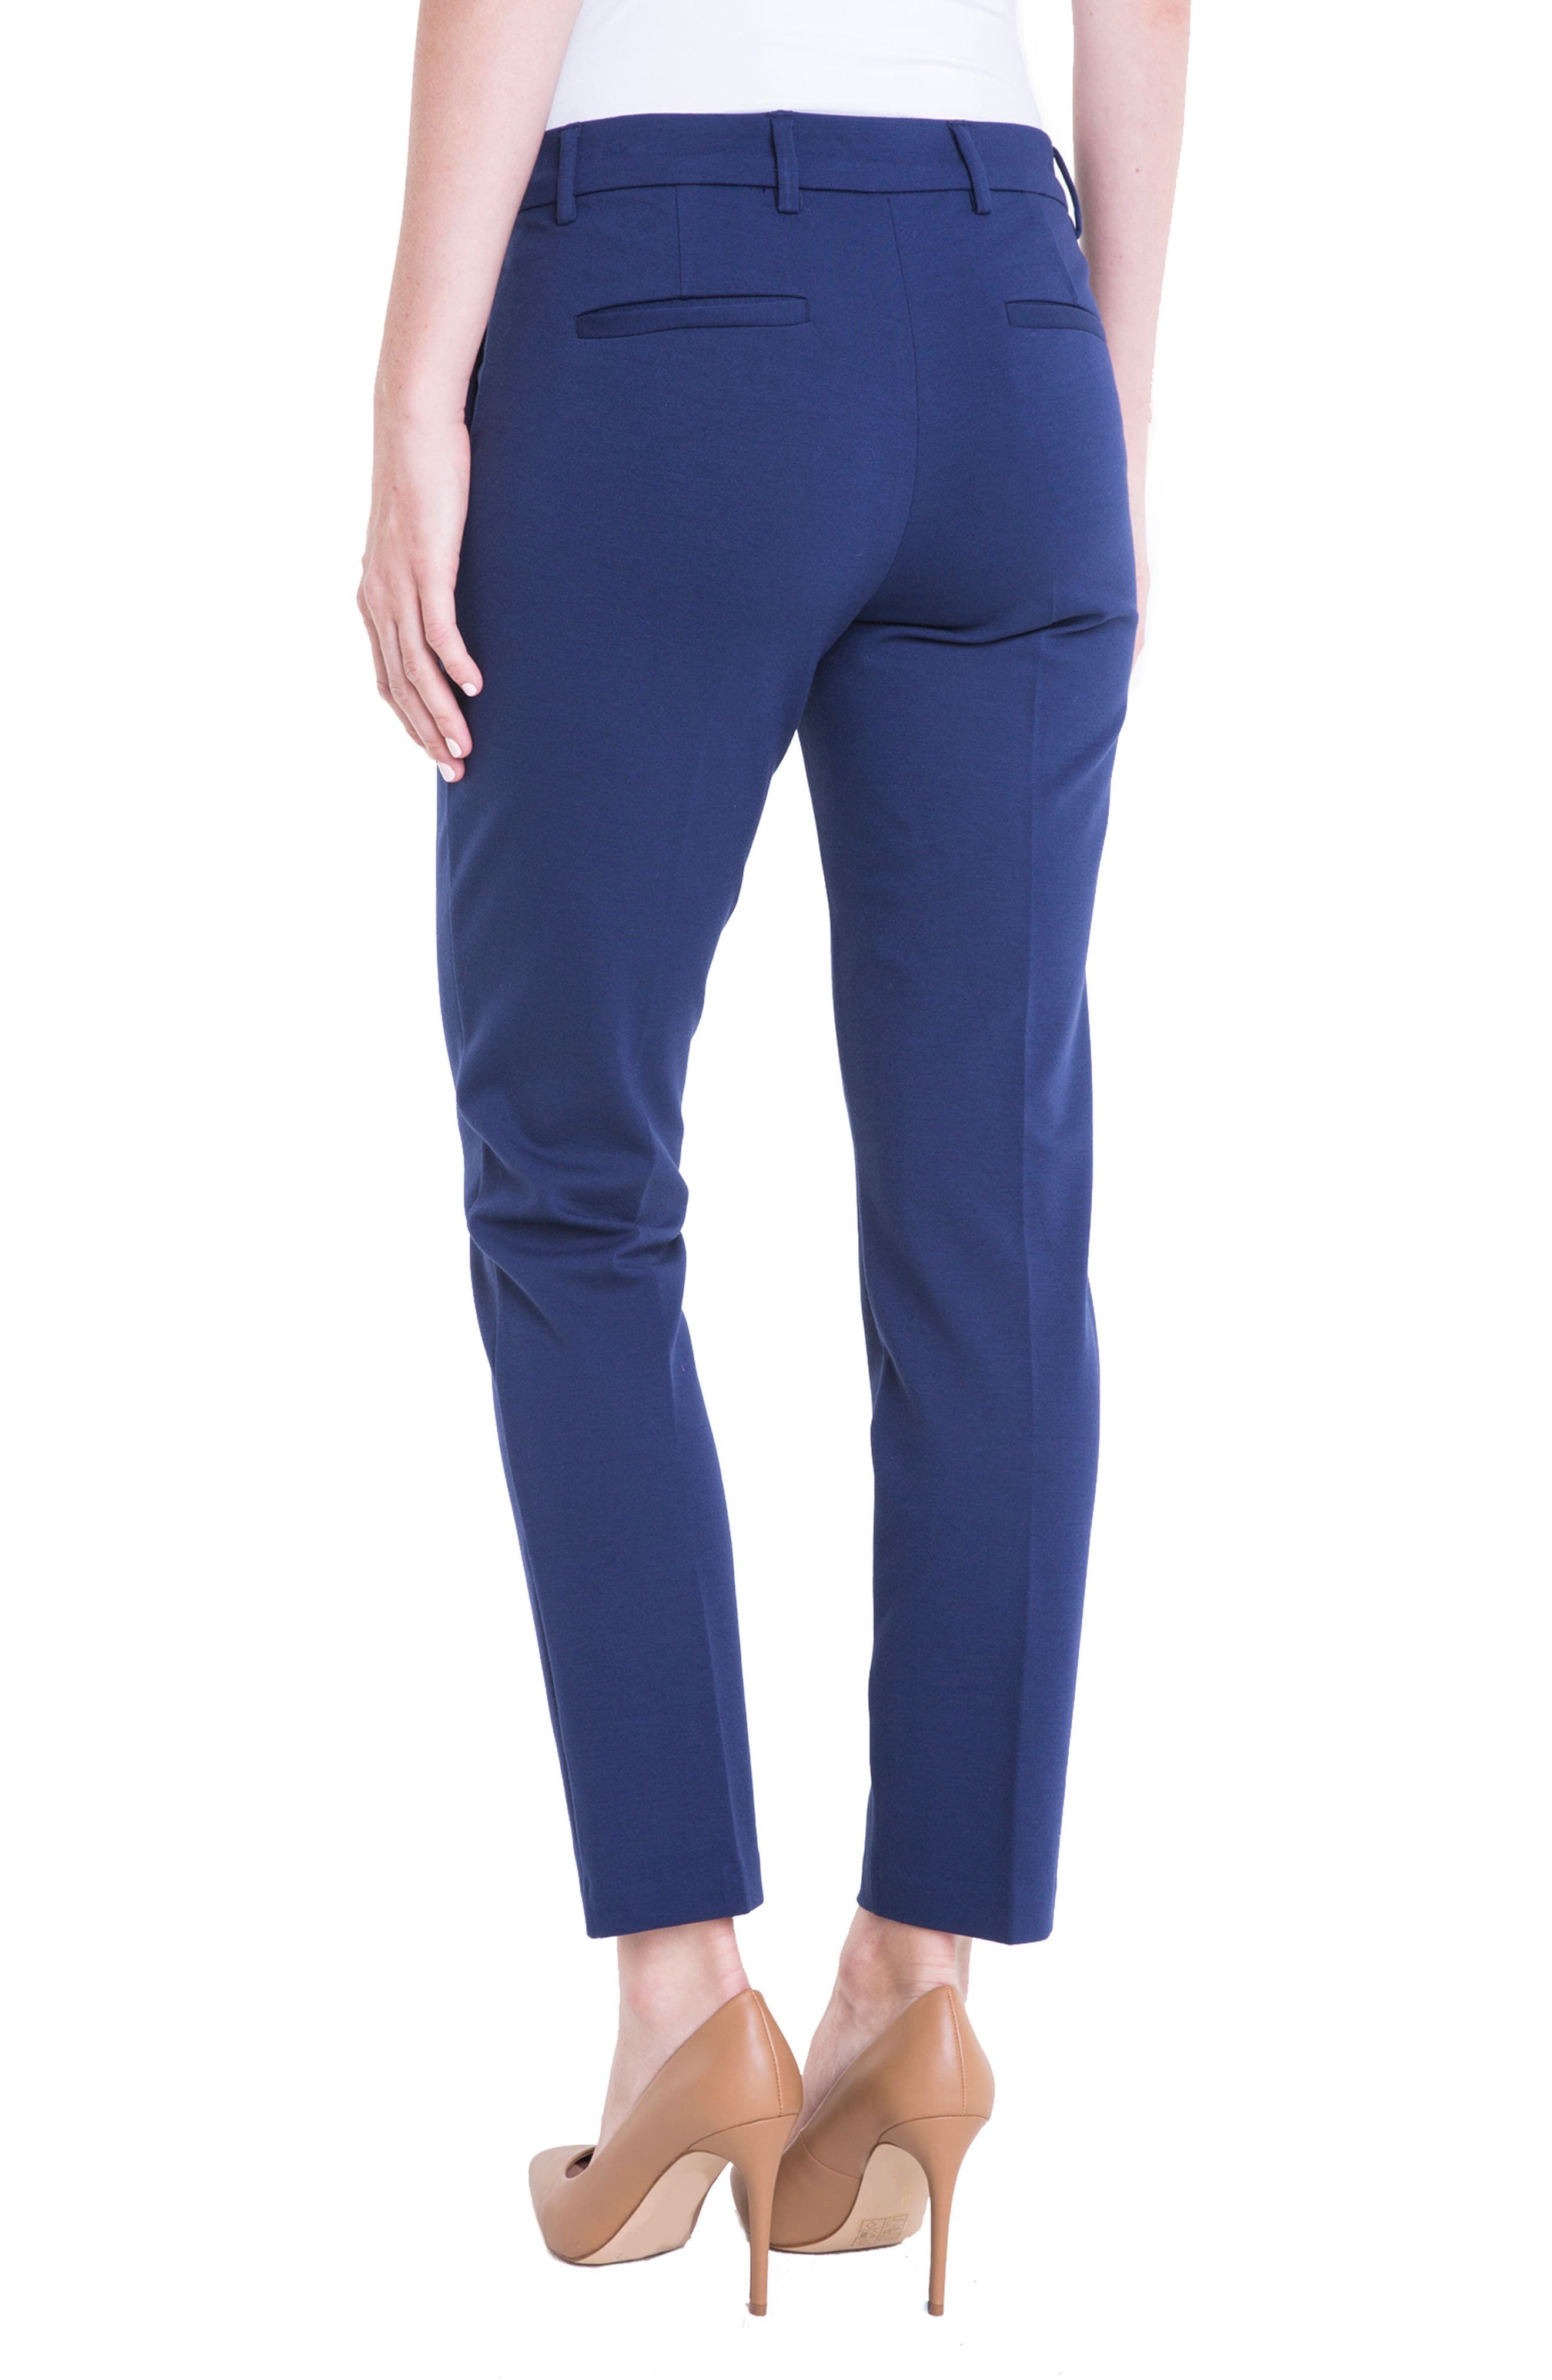 Kelsey Knit Trousers,                             Alternate thumbnail 2, color,                             MEDIEVAL BLUE